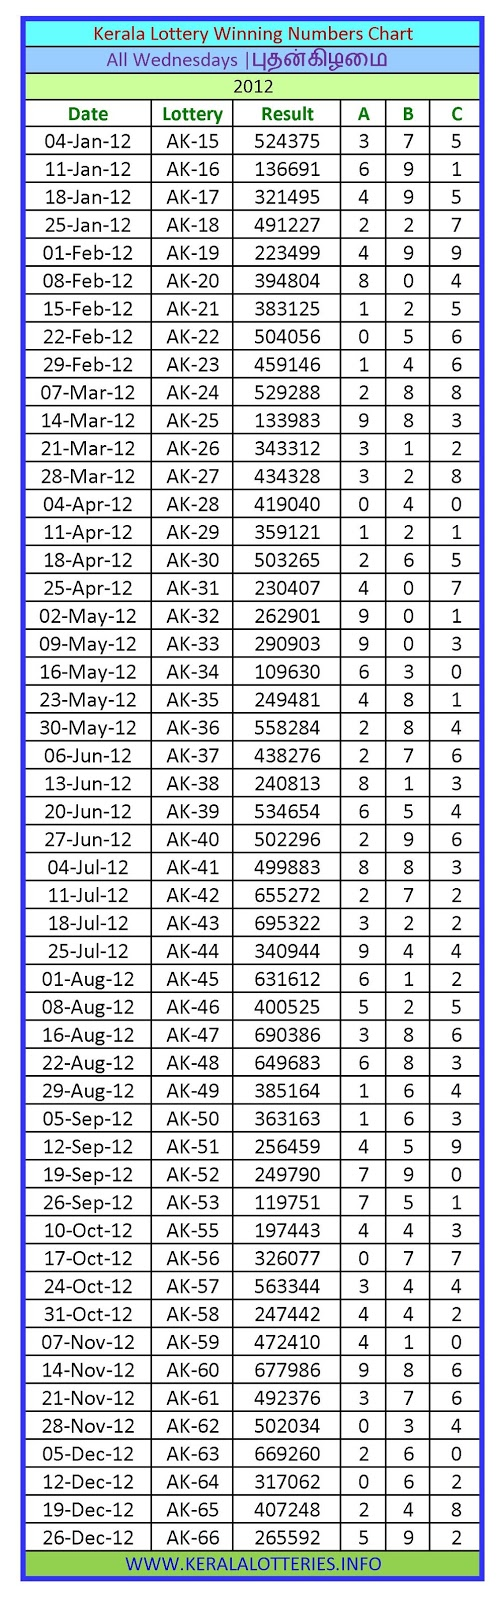 Kerala Lottery Winning Number Chart Wednesday -2012